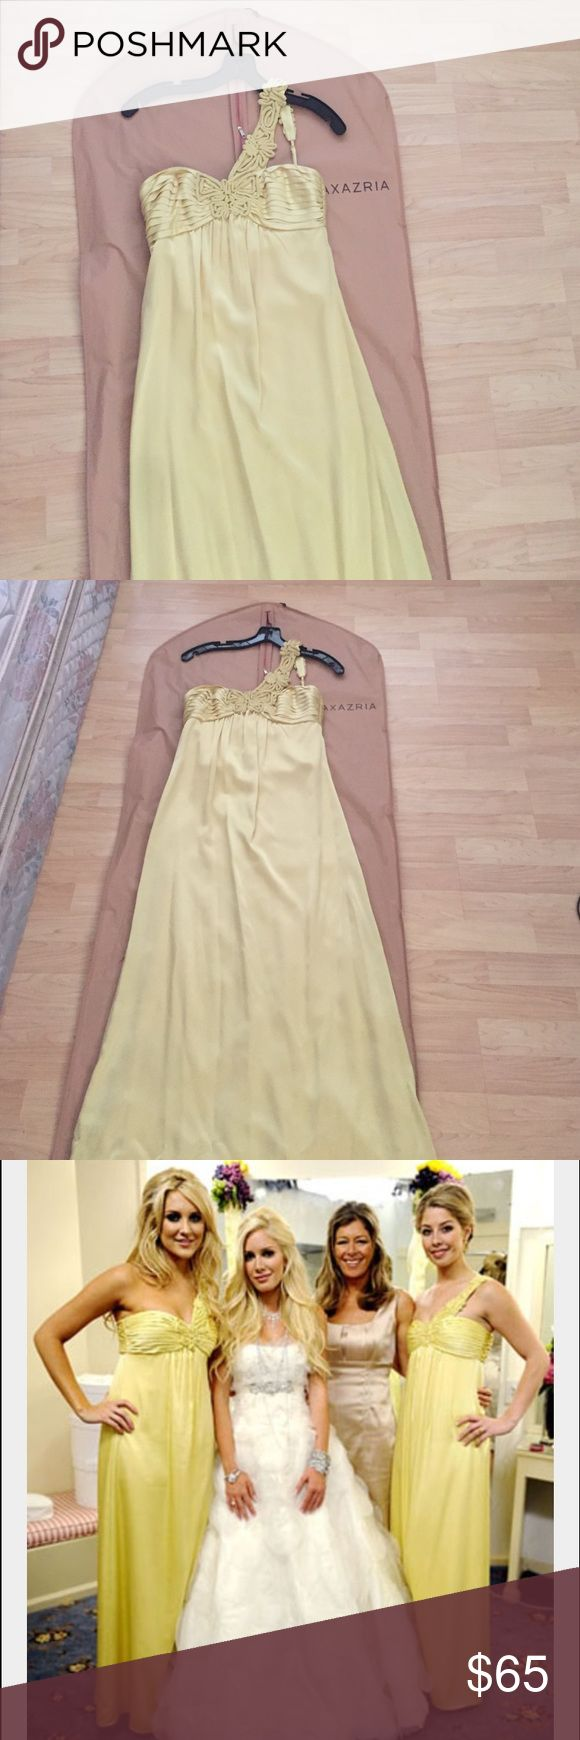 BCBGMaxAzria Gown Yellow gown. Used once as a prom dress. As seen on Heidi Montag's bridesmaids. Satin fabric with a pleated bust and sweetheart neckline. BCBGMaxAzria Dresses Wedding